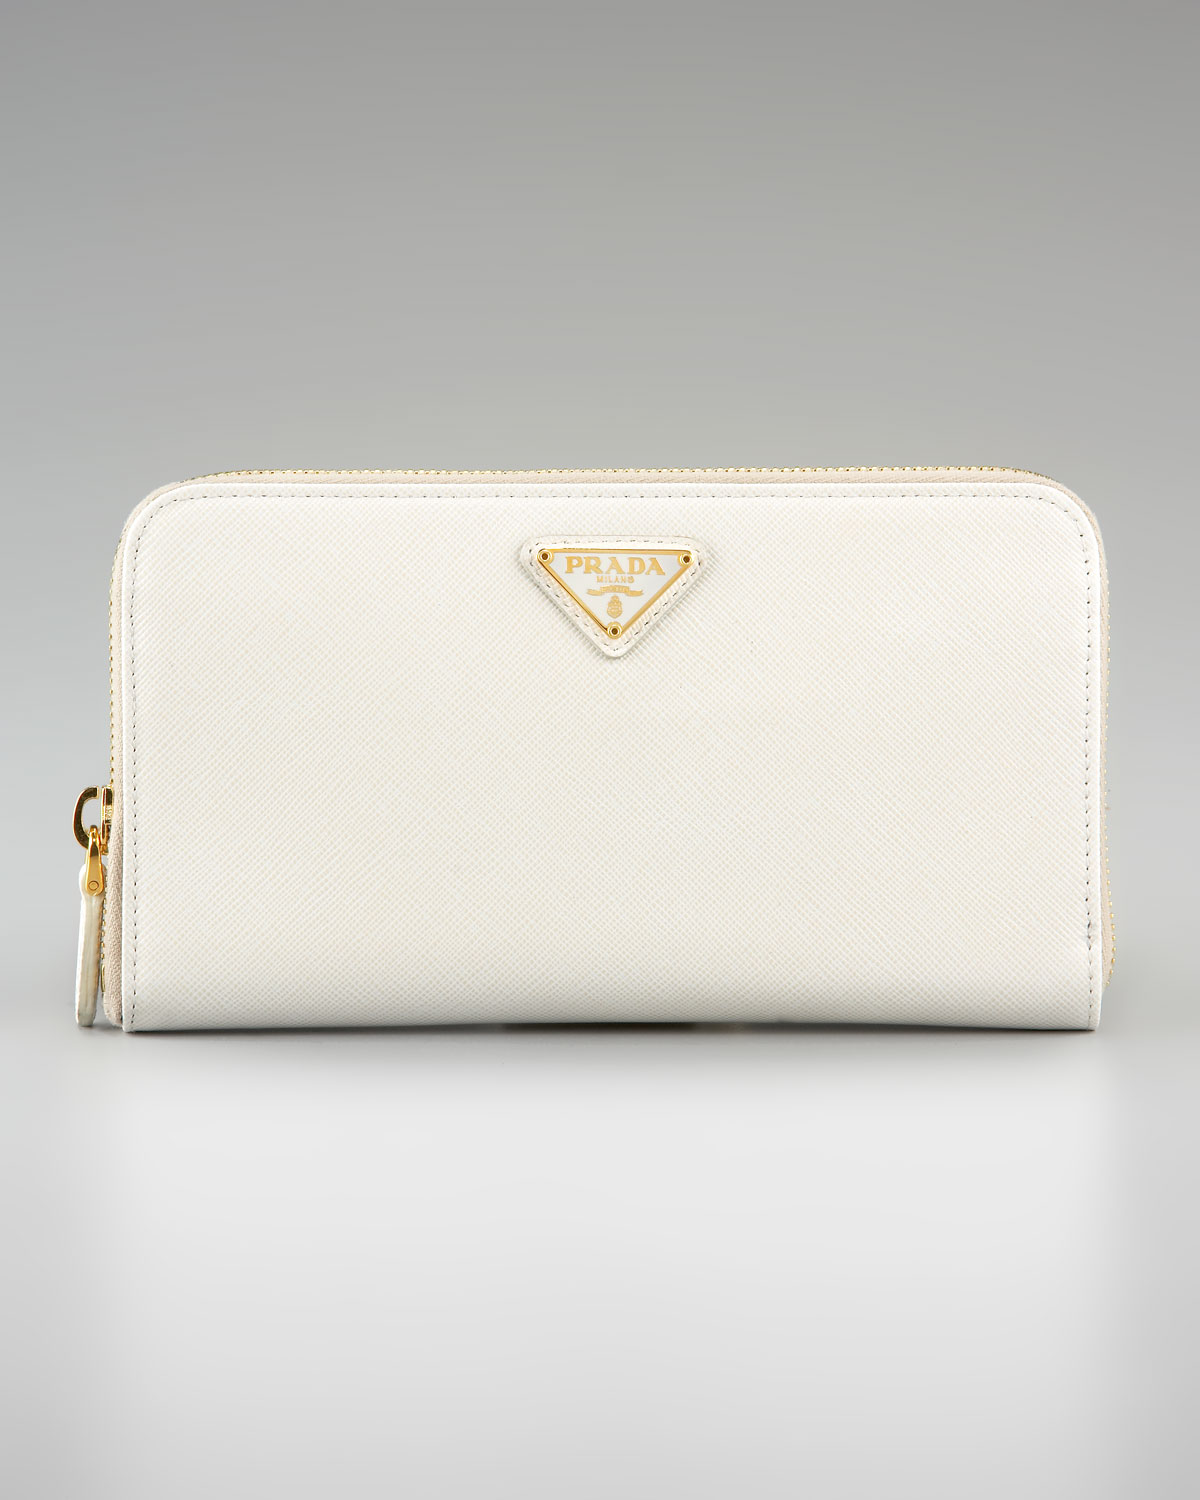 prada saffiano leather shoulder bag - prada-bianco-white-saffiano-ziparound-wallet-product-4-3330858-419356904.jpeg